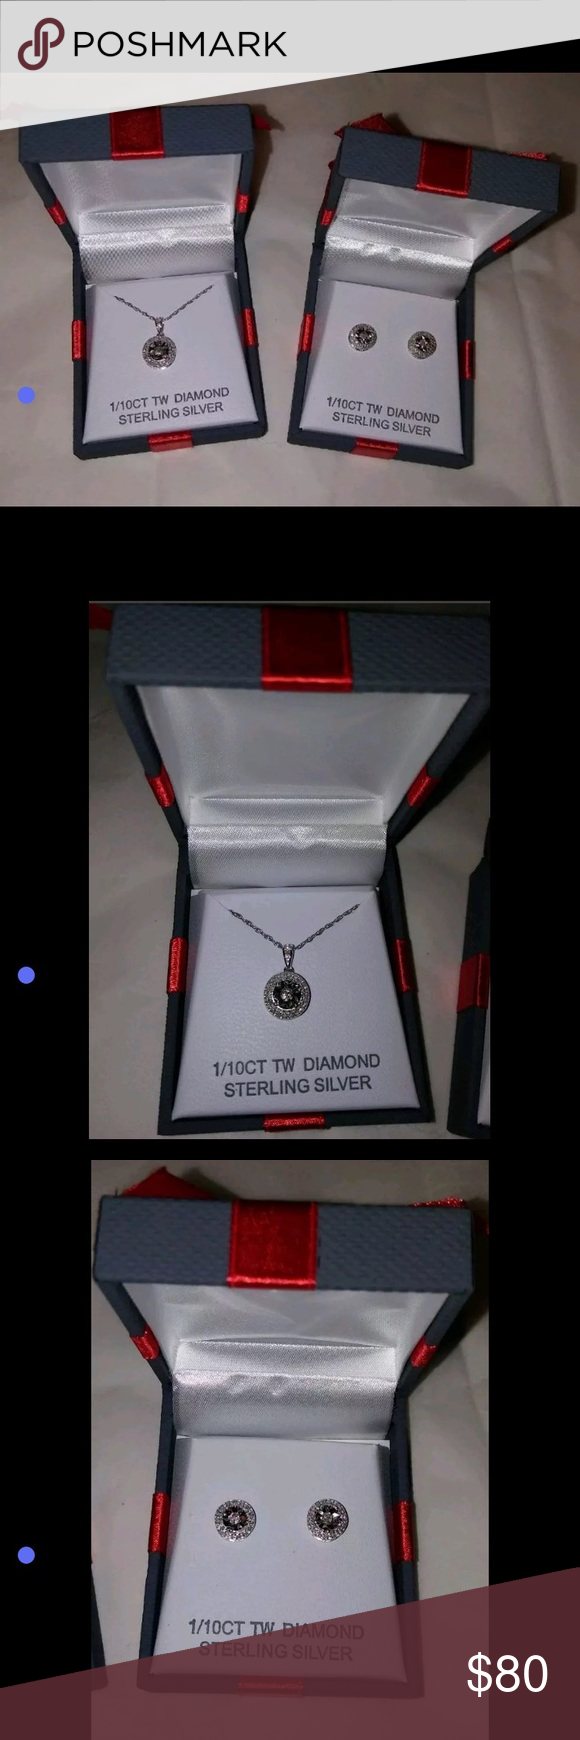 Sterling & Diamond jewelry set Mothers Day! Brand new In ...